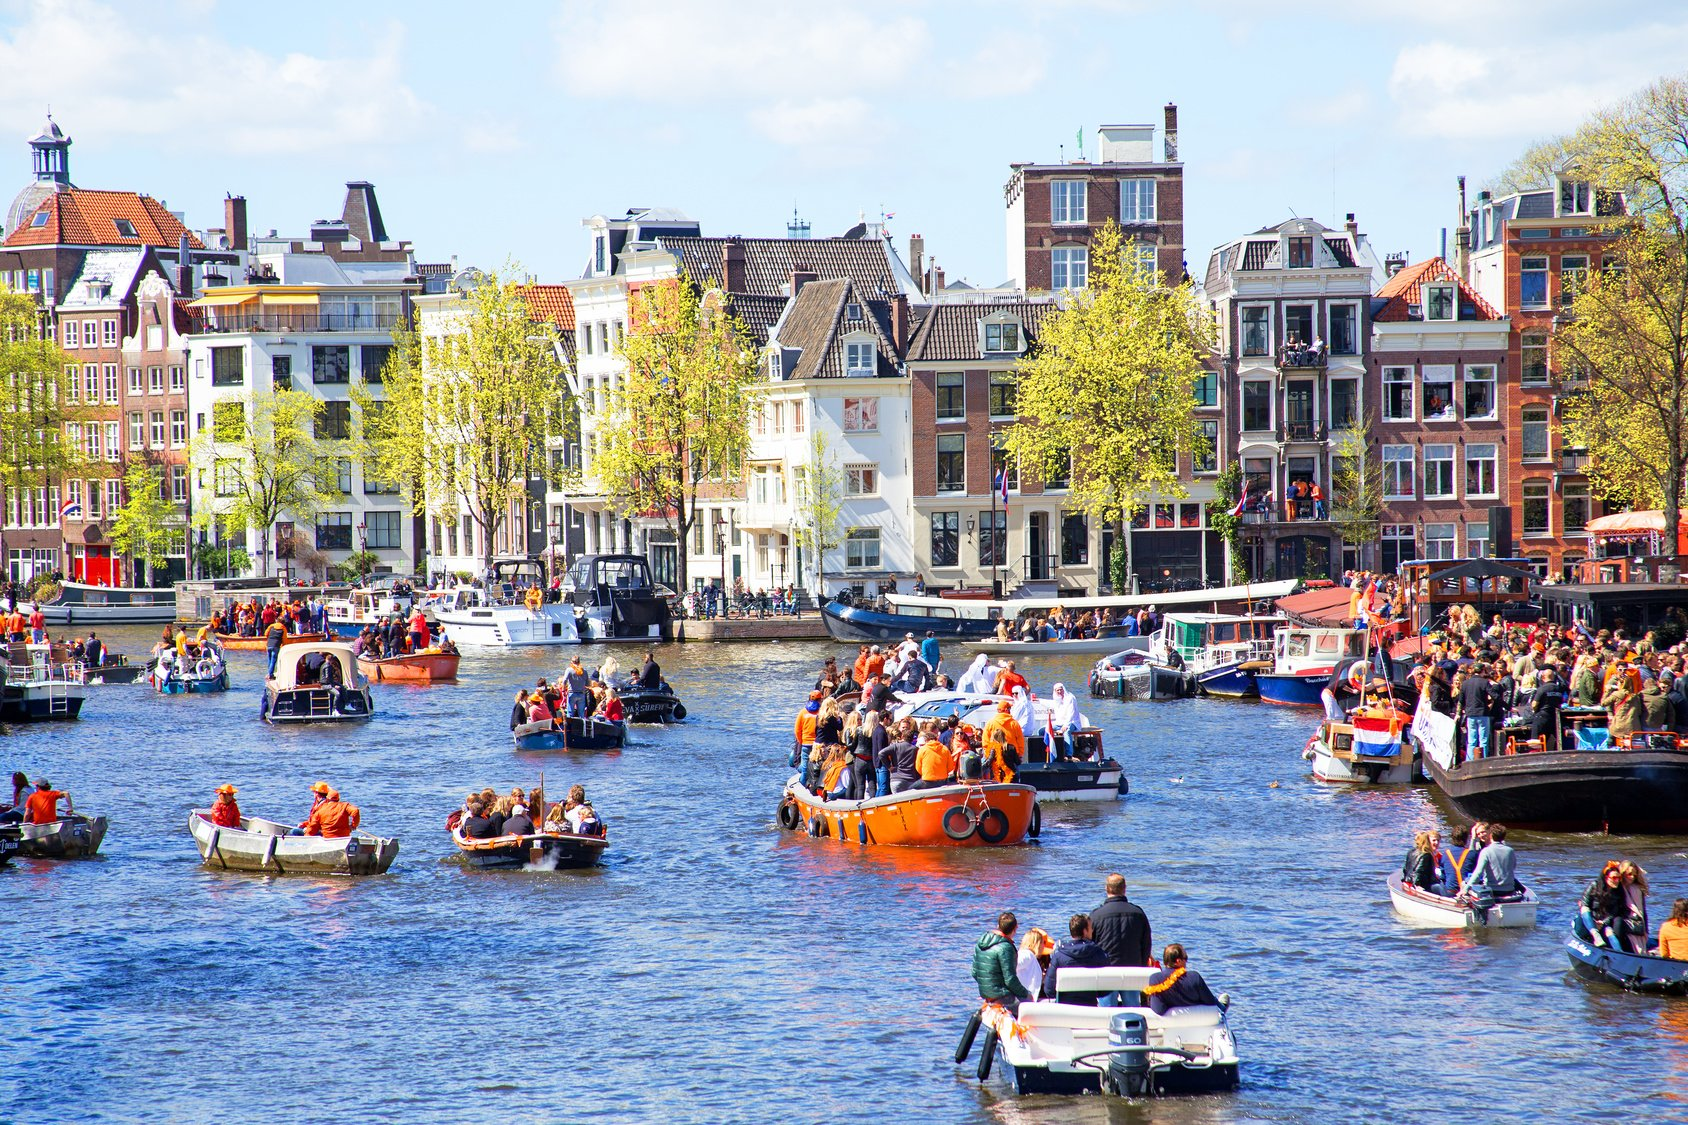 AMSTERDAM - APR 27: People celebrating Kings Day in Amsterdam on